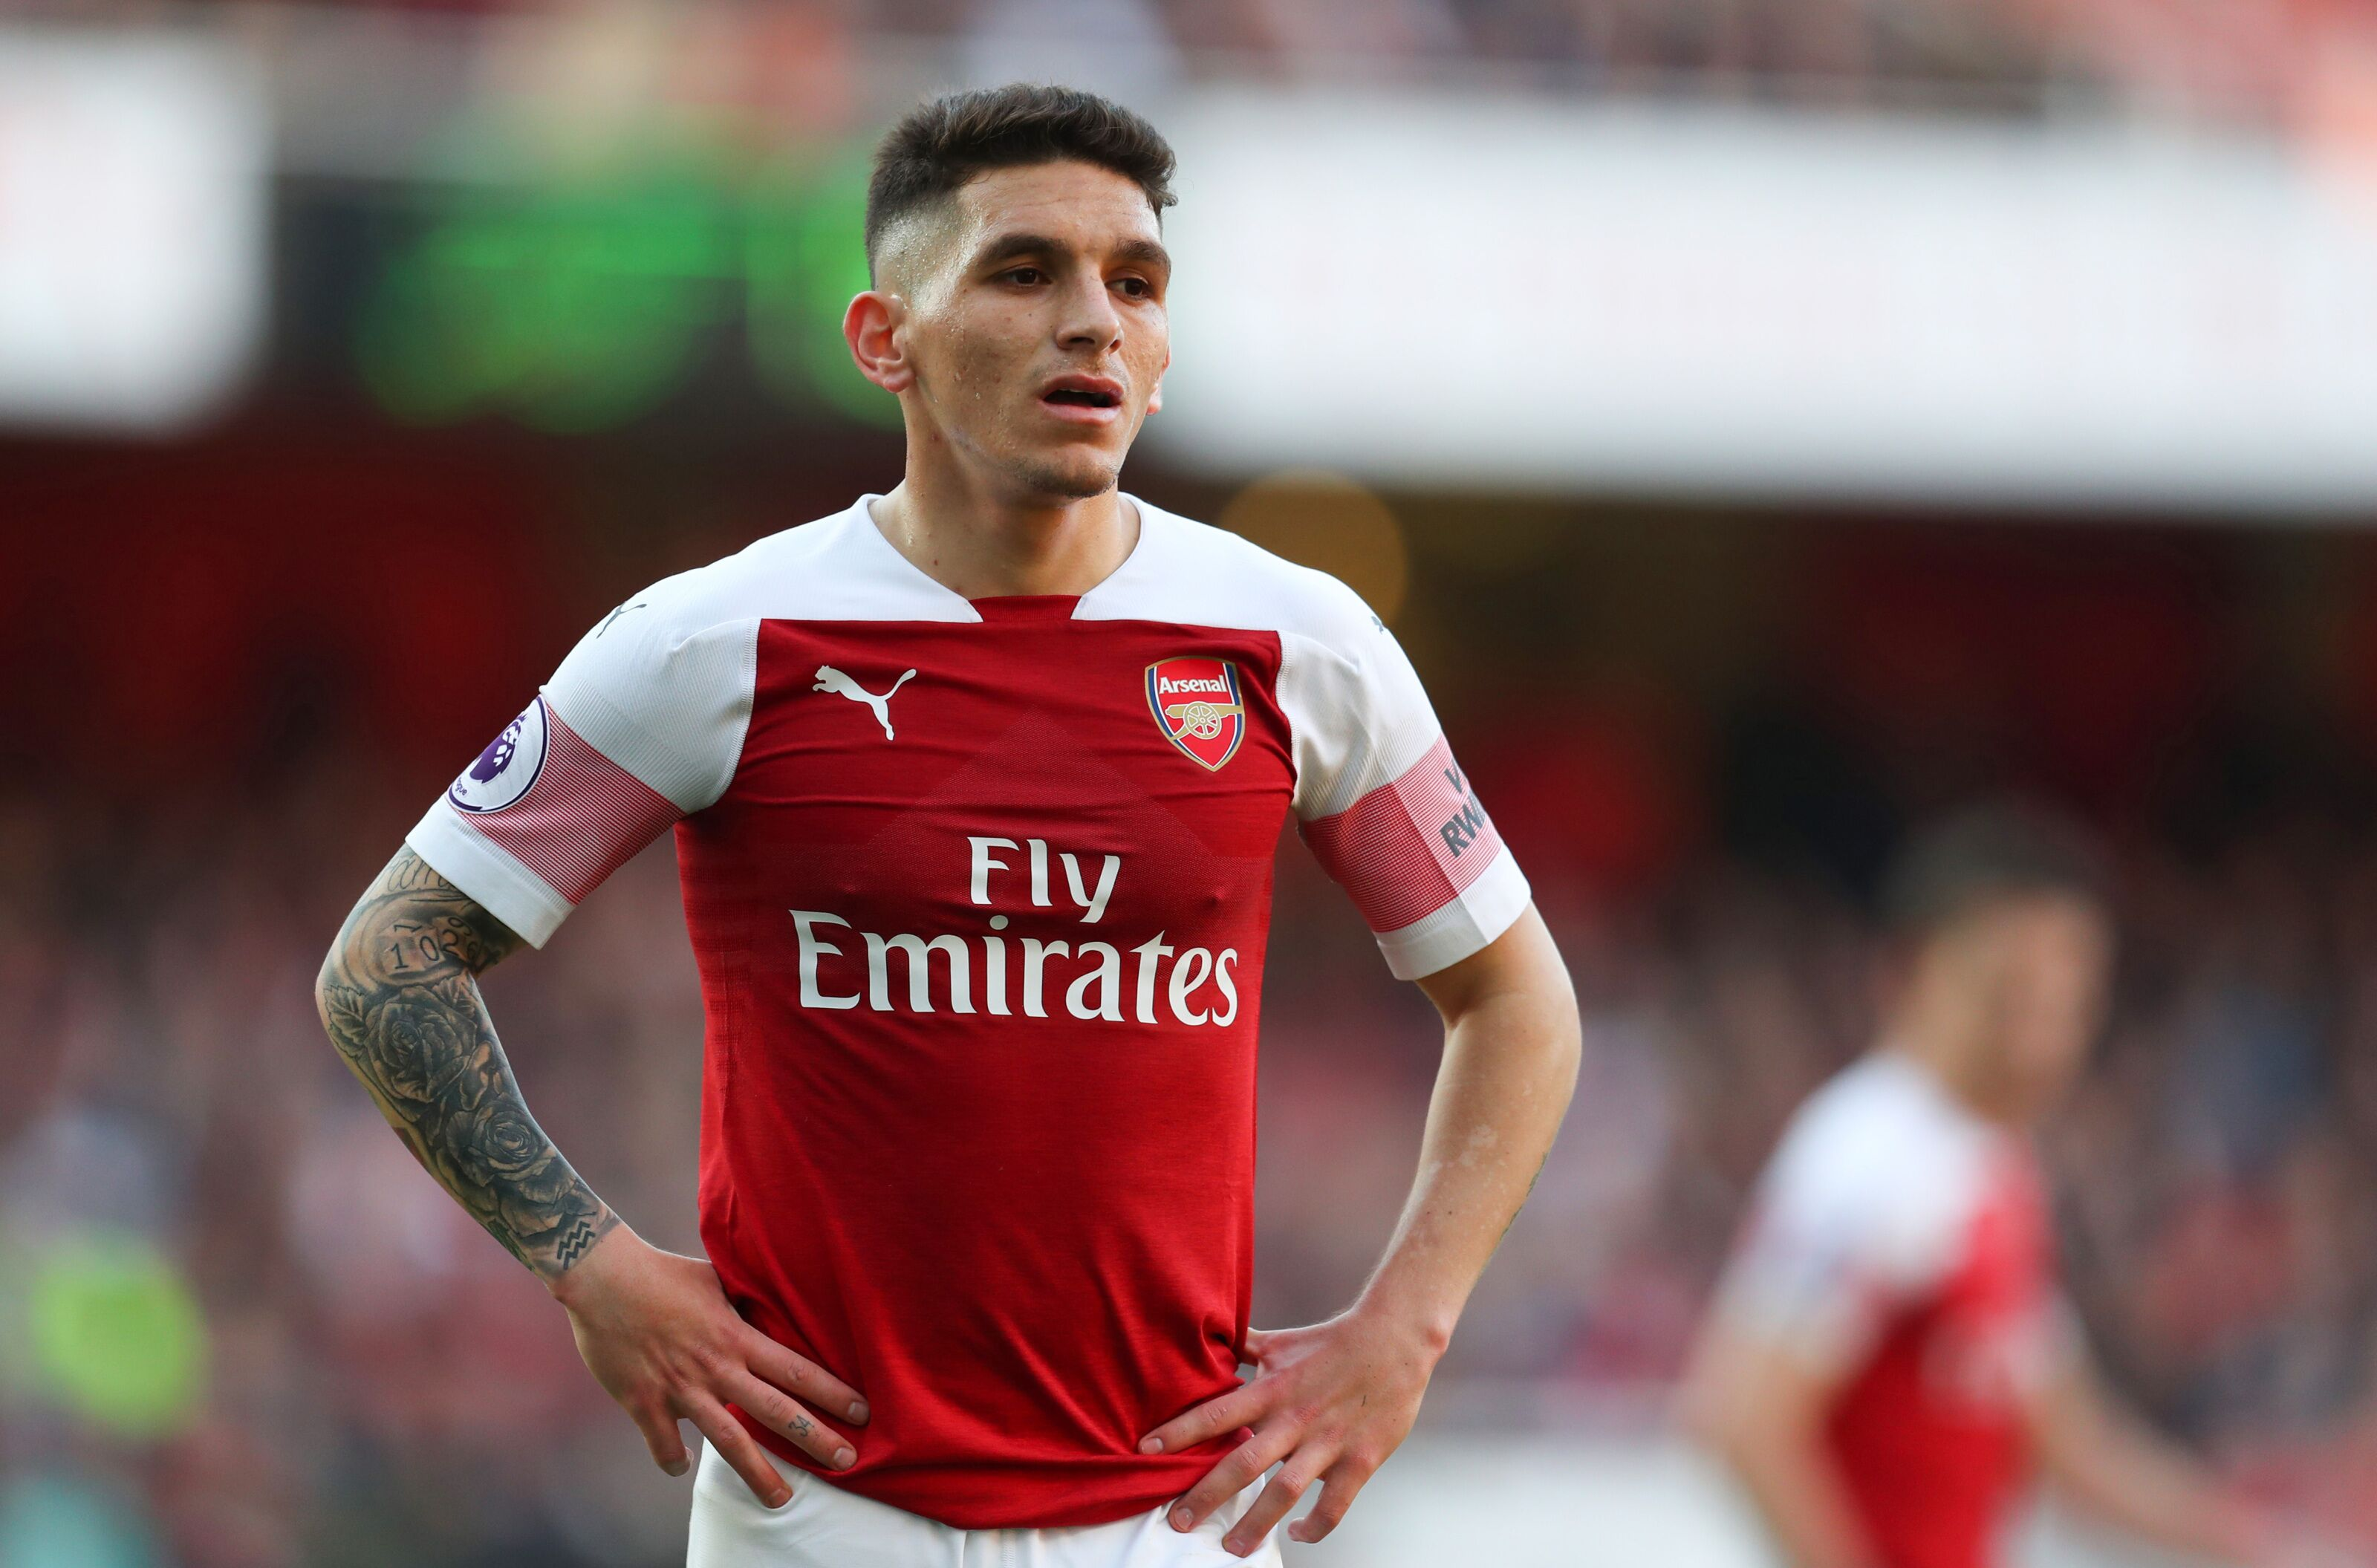 Arsenal: I never thought Lucas Torreira would be a quitter